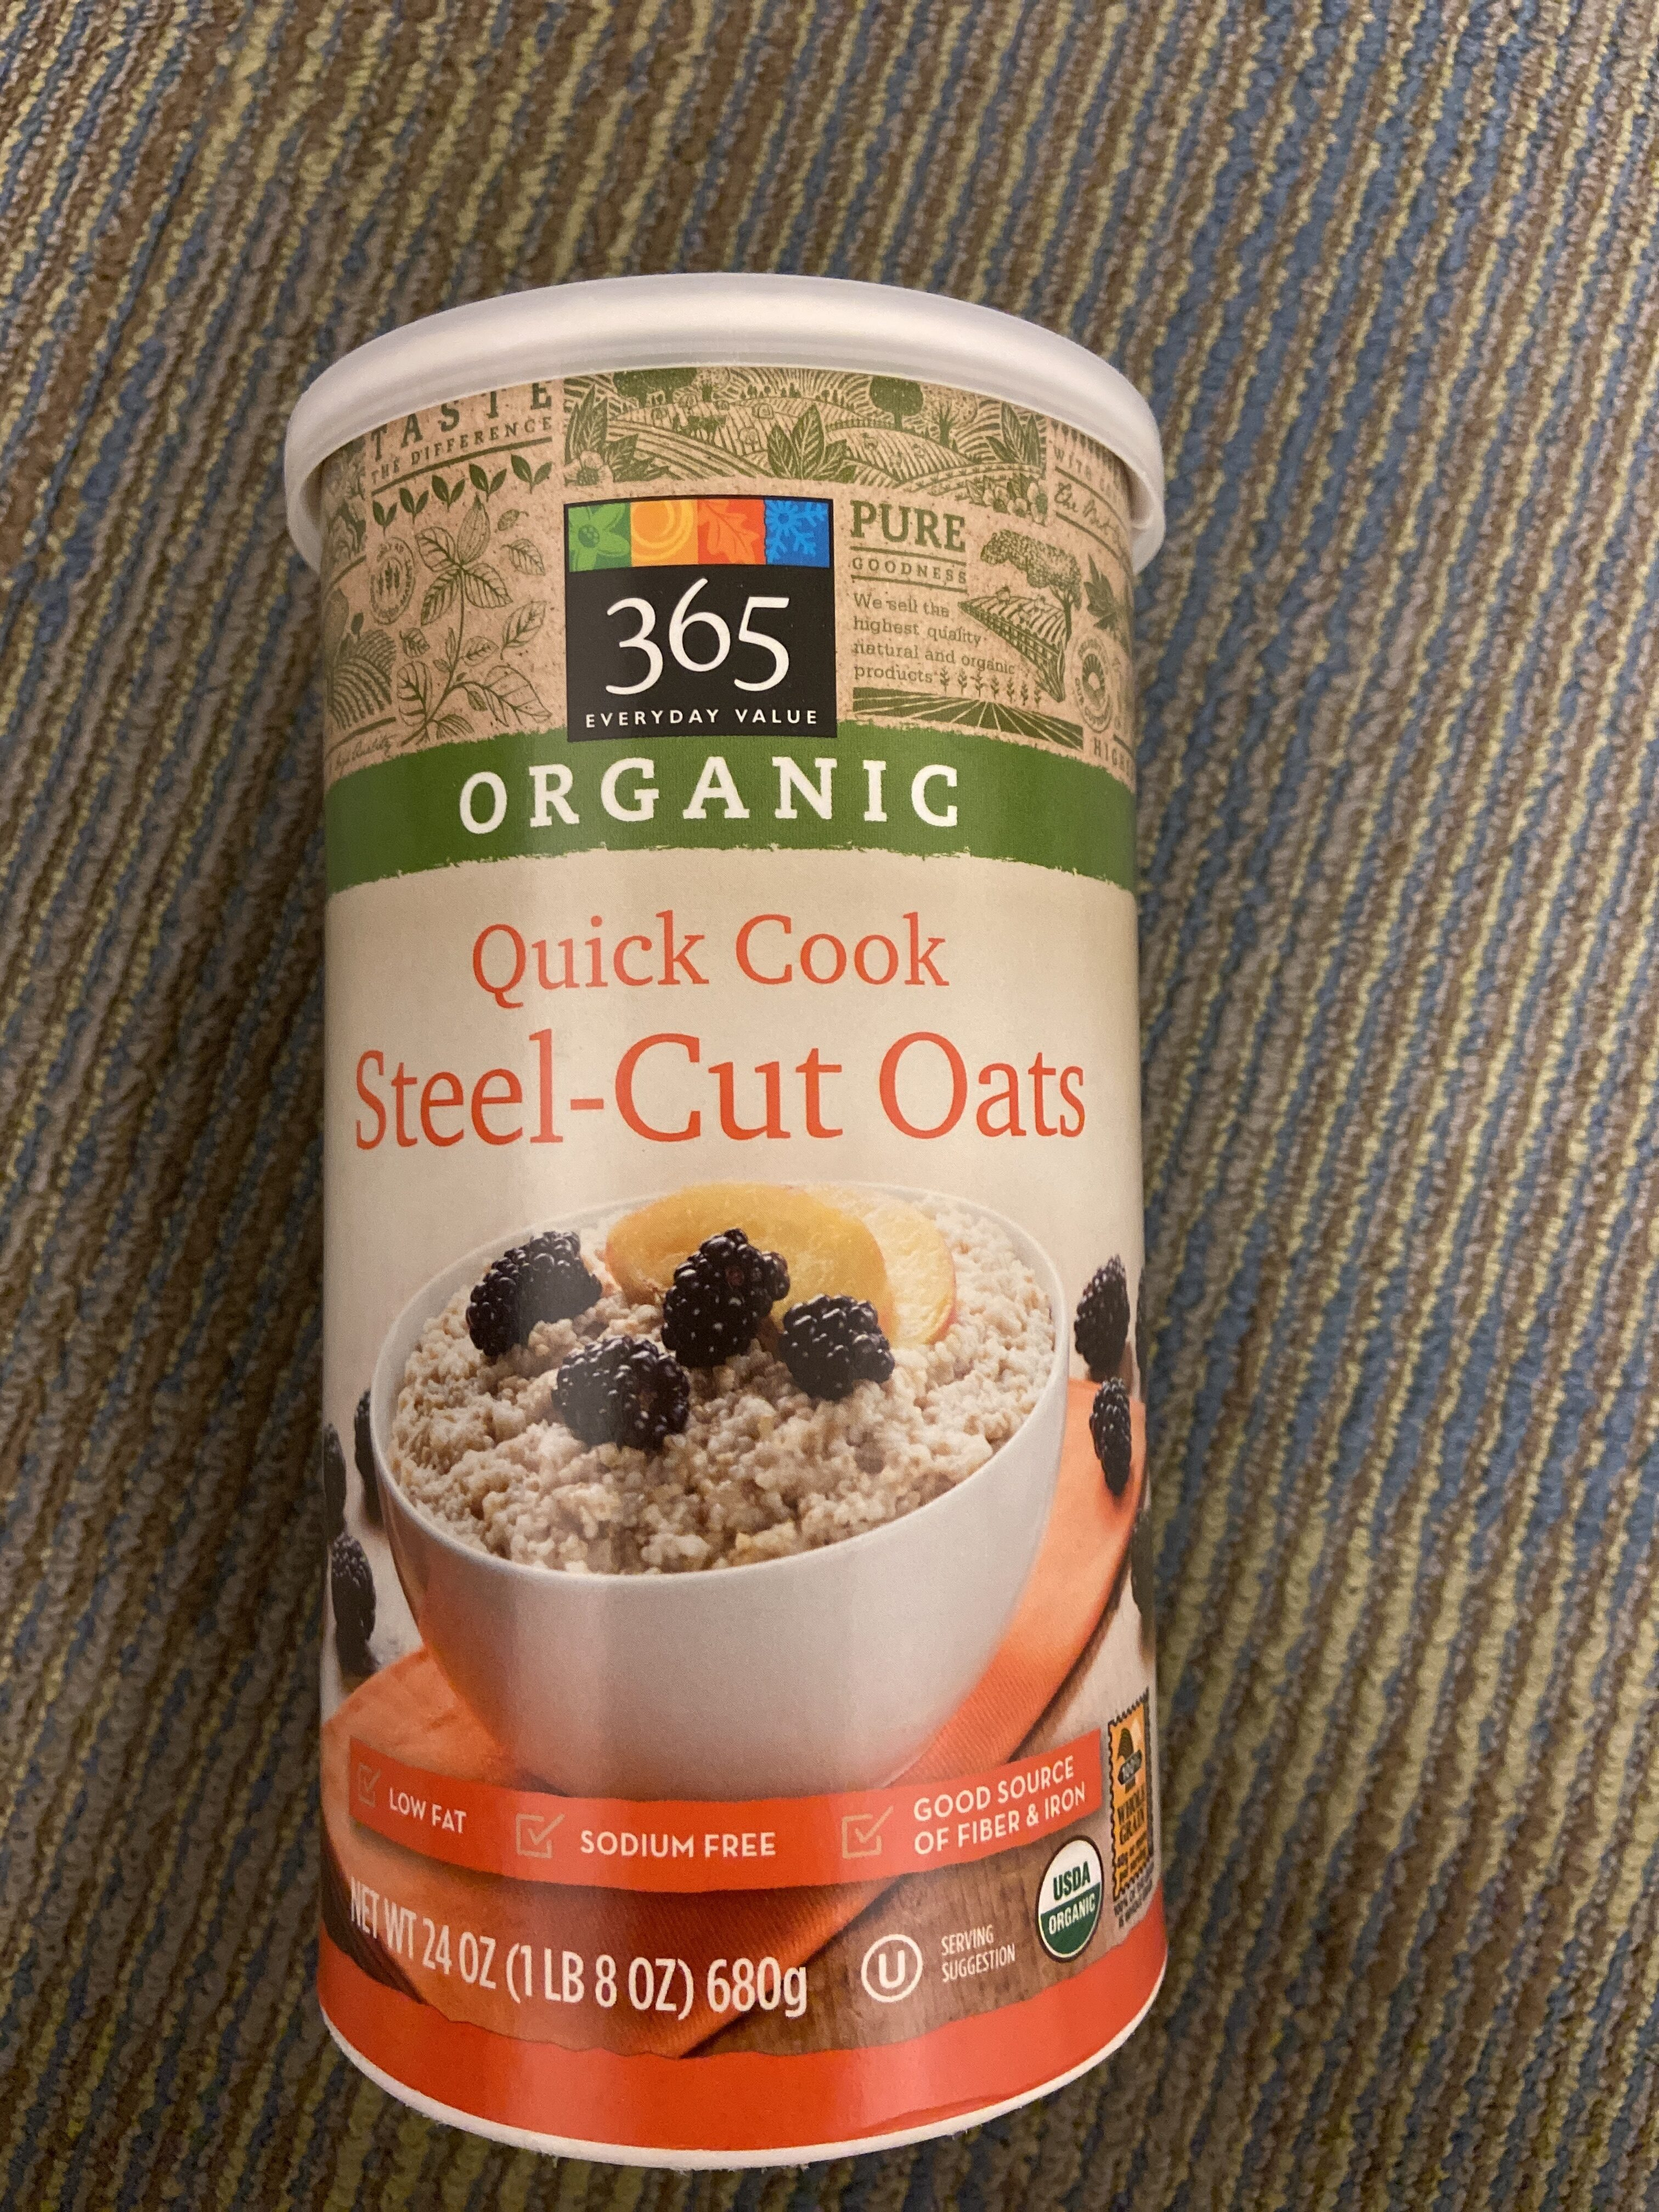 Quick cook steel-cut oats - Product - en